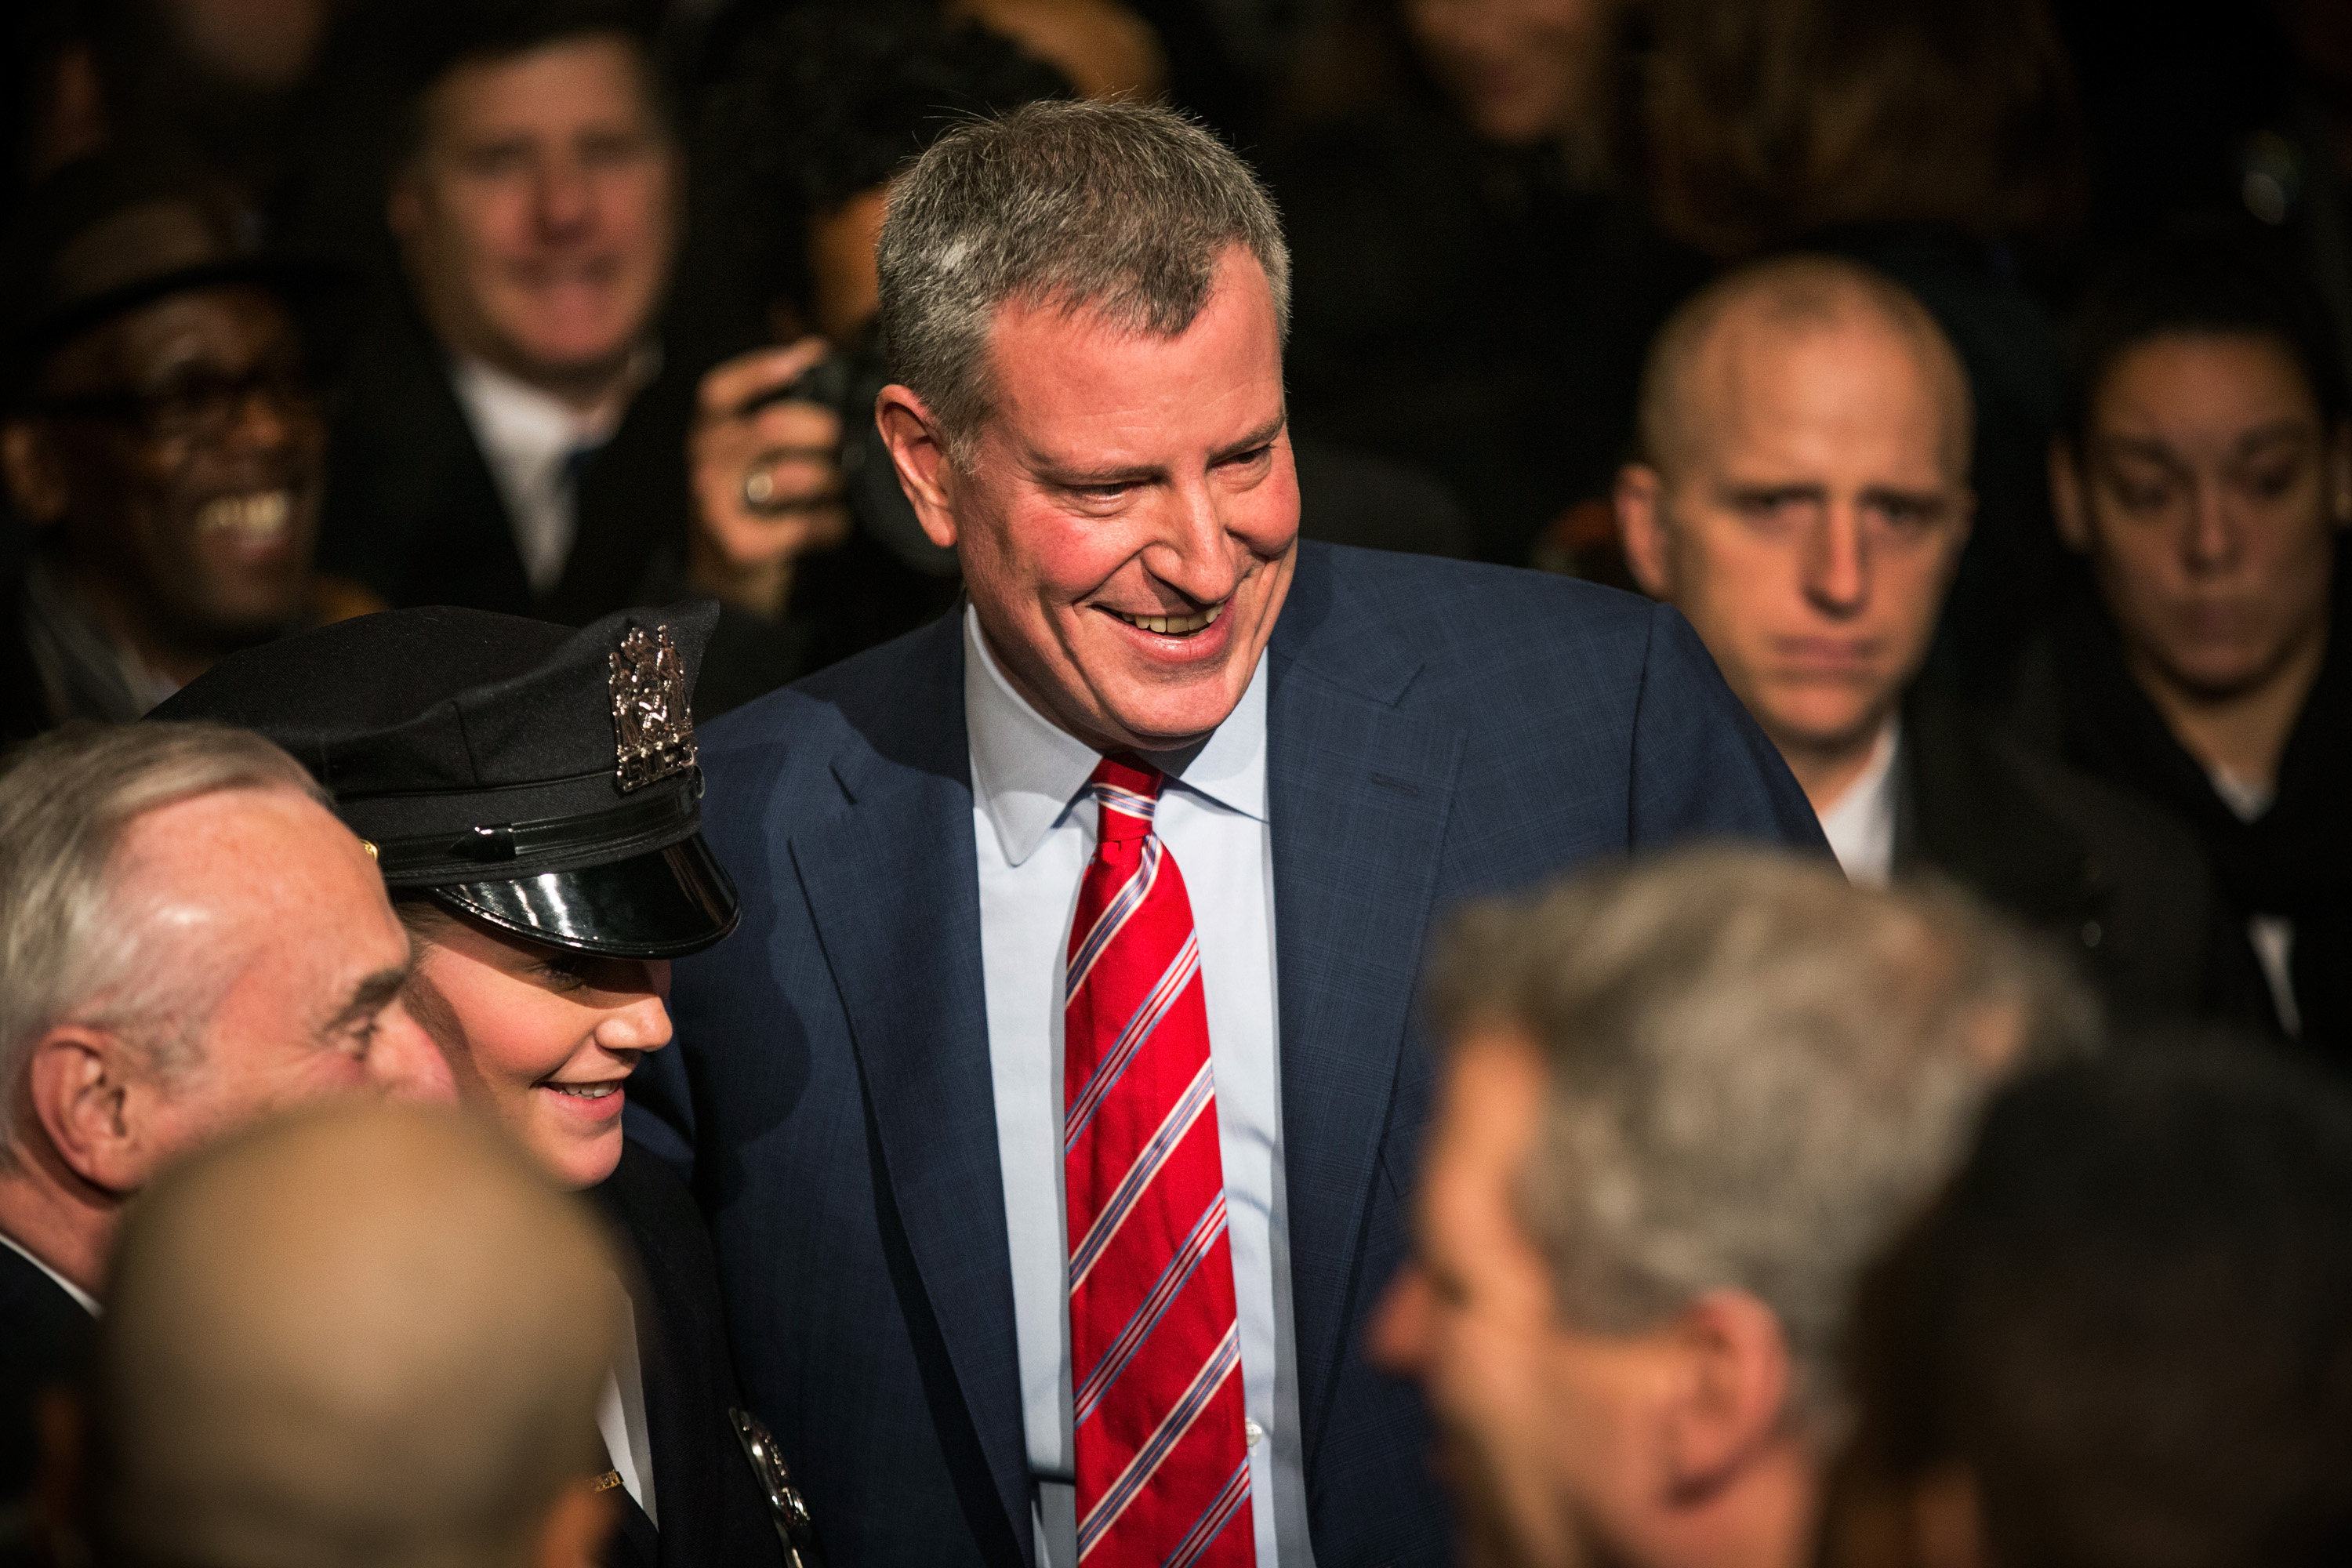 Mayor Bill de Blasio at his State of the City address today. (Photo by Andrew Burton/Getty Images)